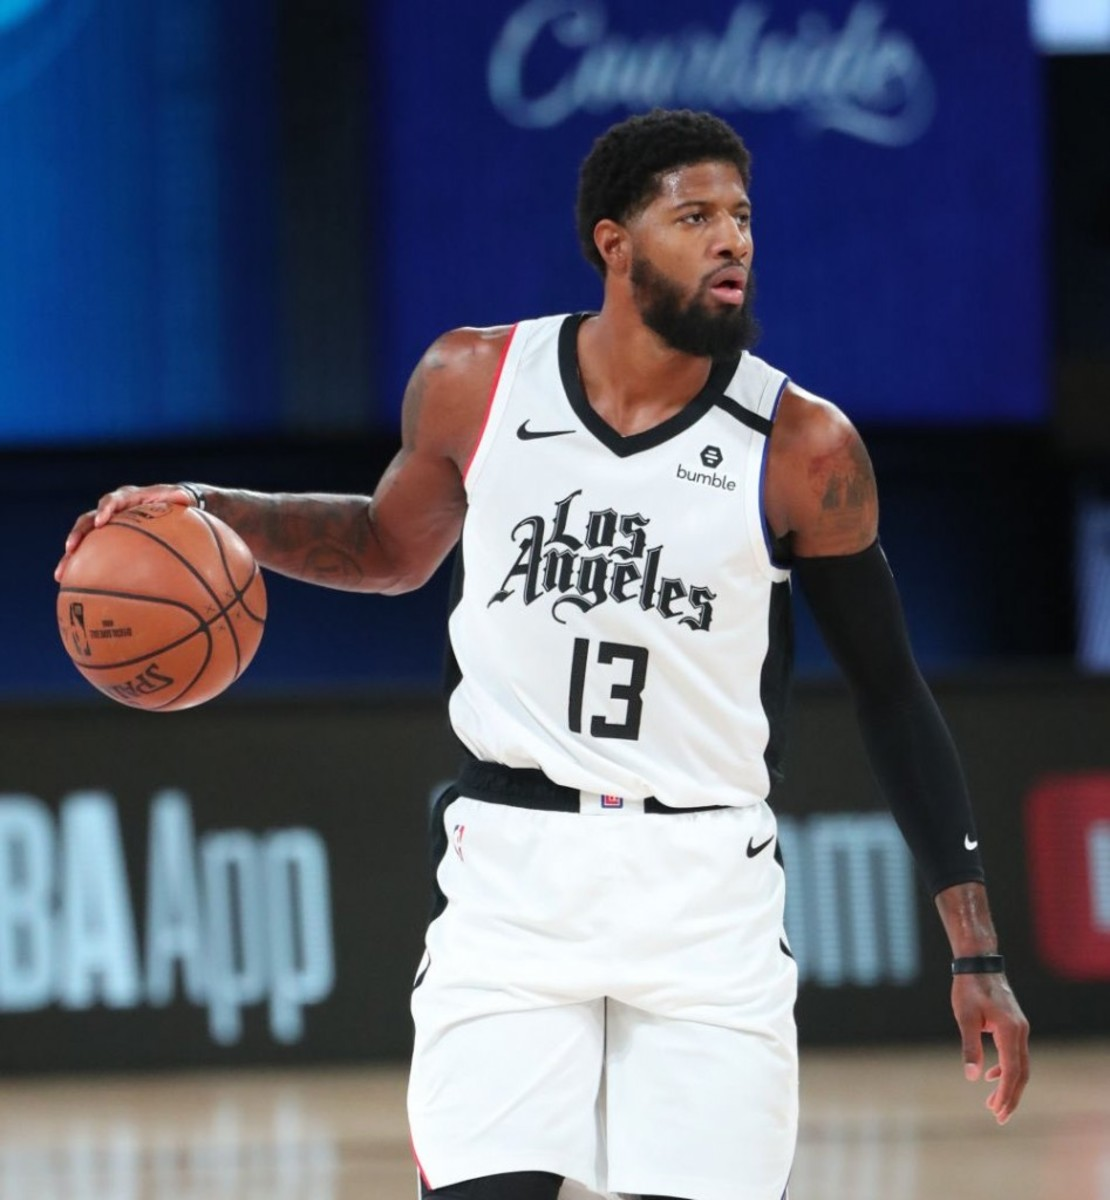 Paul George Has Blocked Users From Commenting On His Instagram Pictures Unless He Follows Them